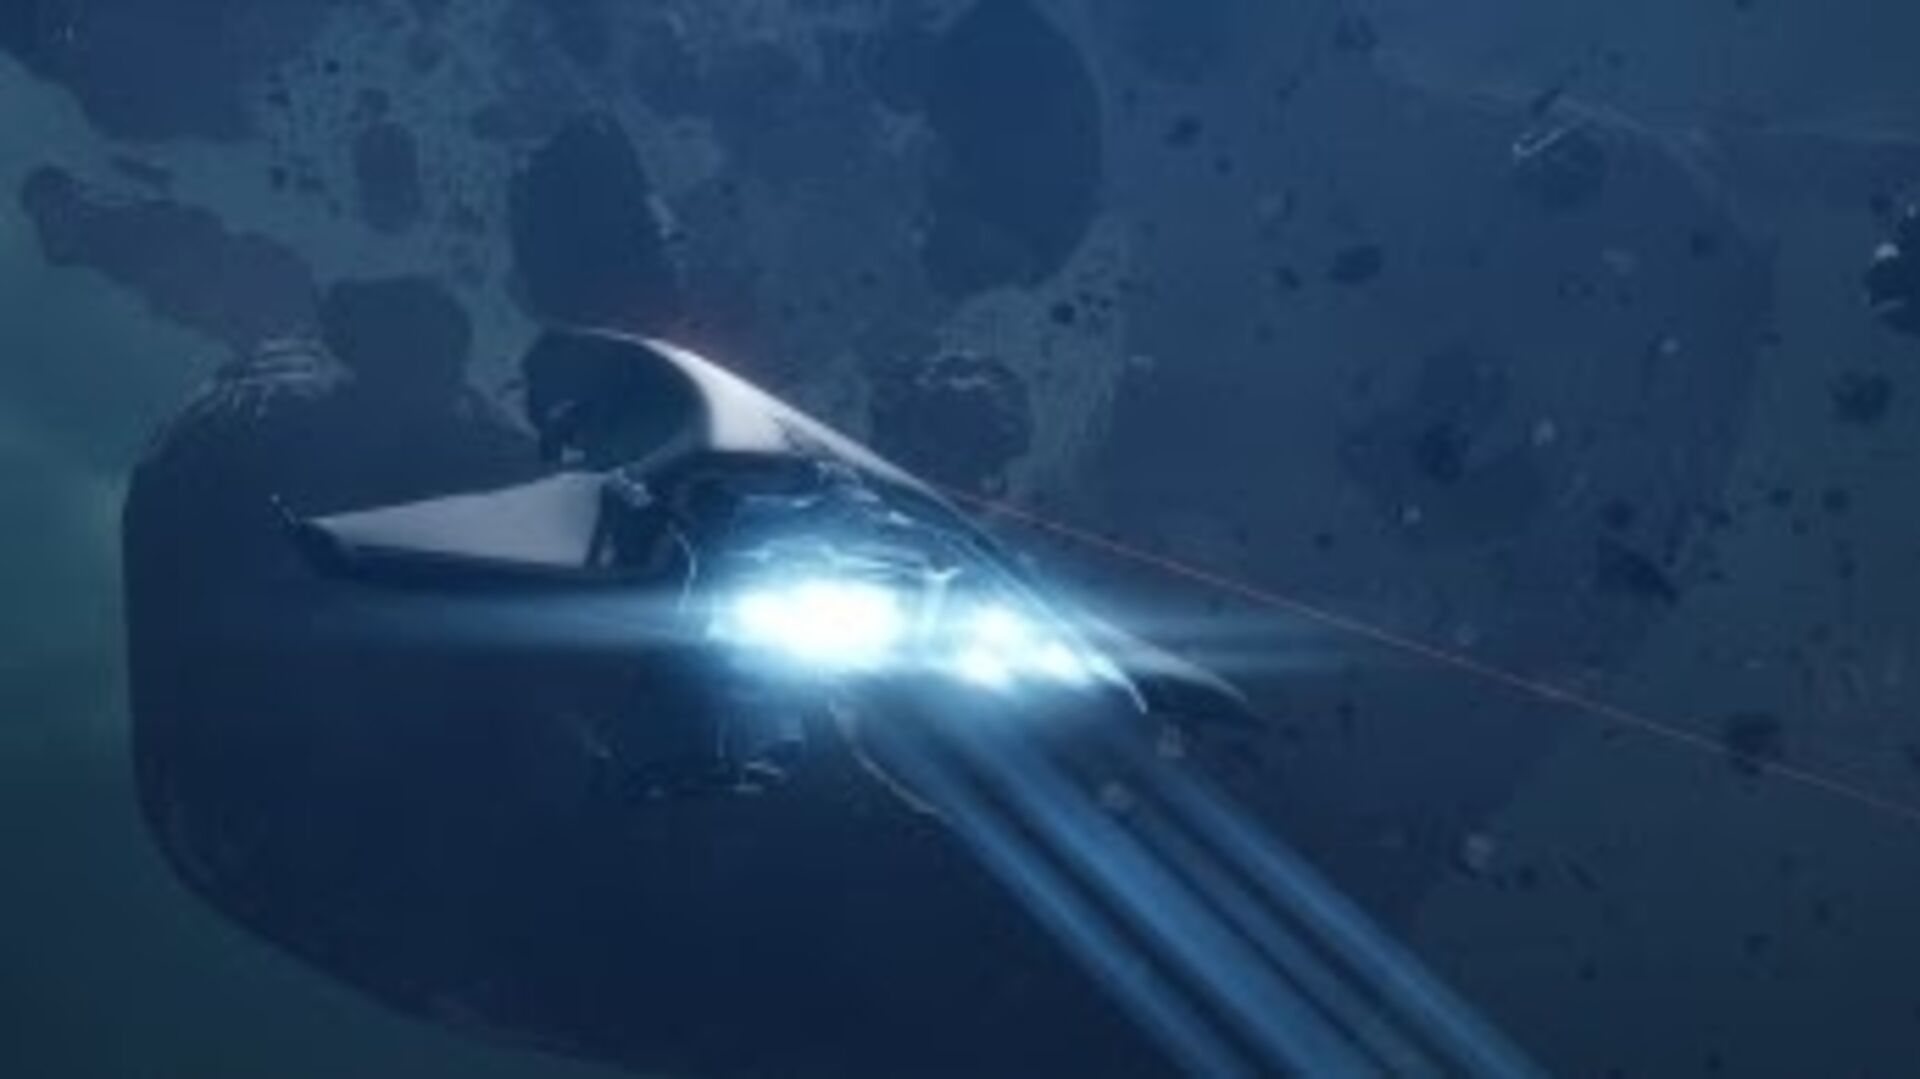 The next expansion for Eve Online is Into the Abyss